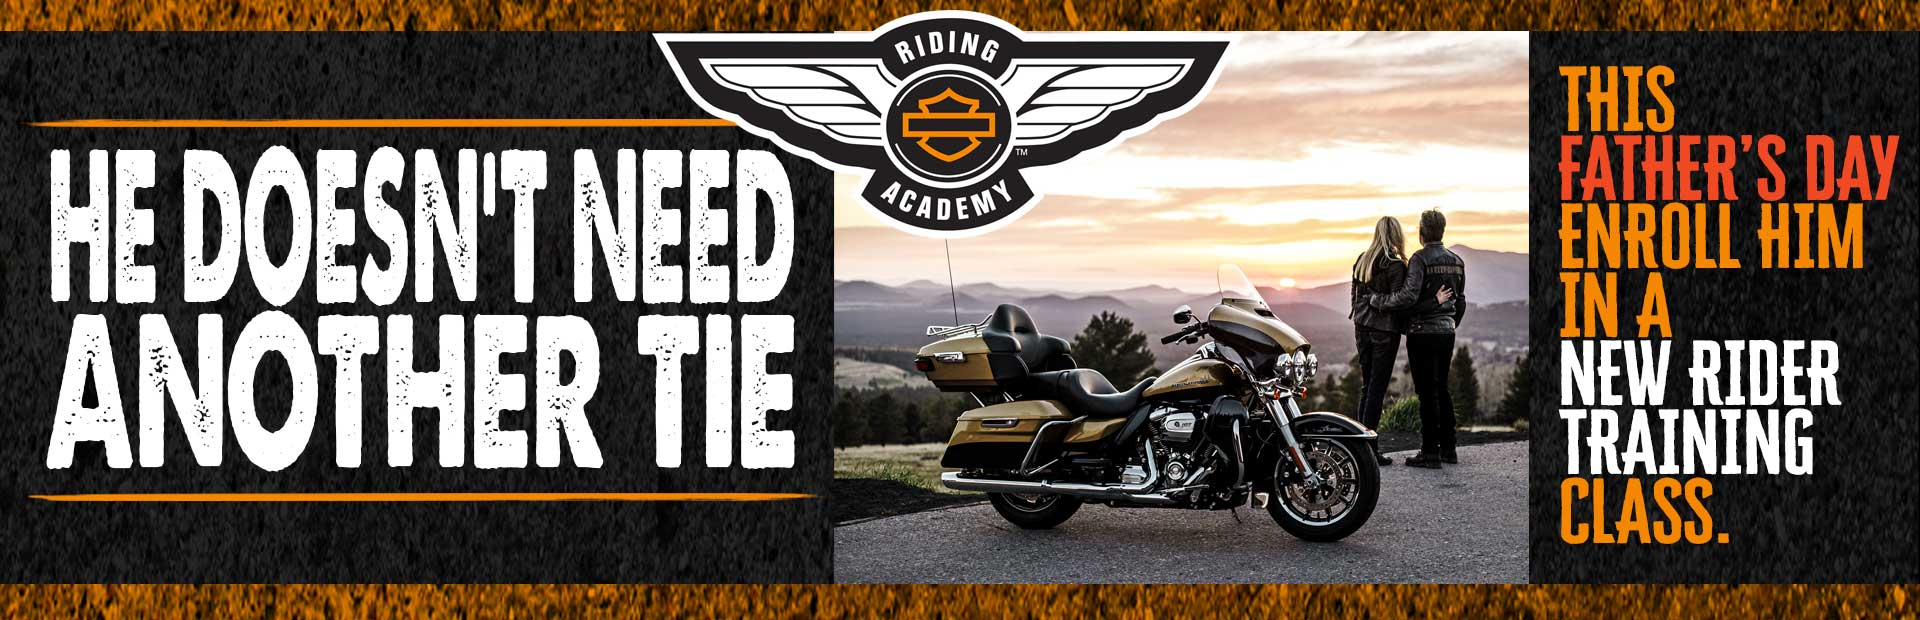 Riding Academy Promotion